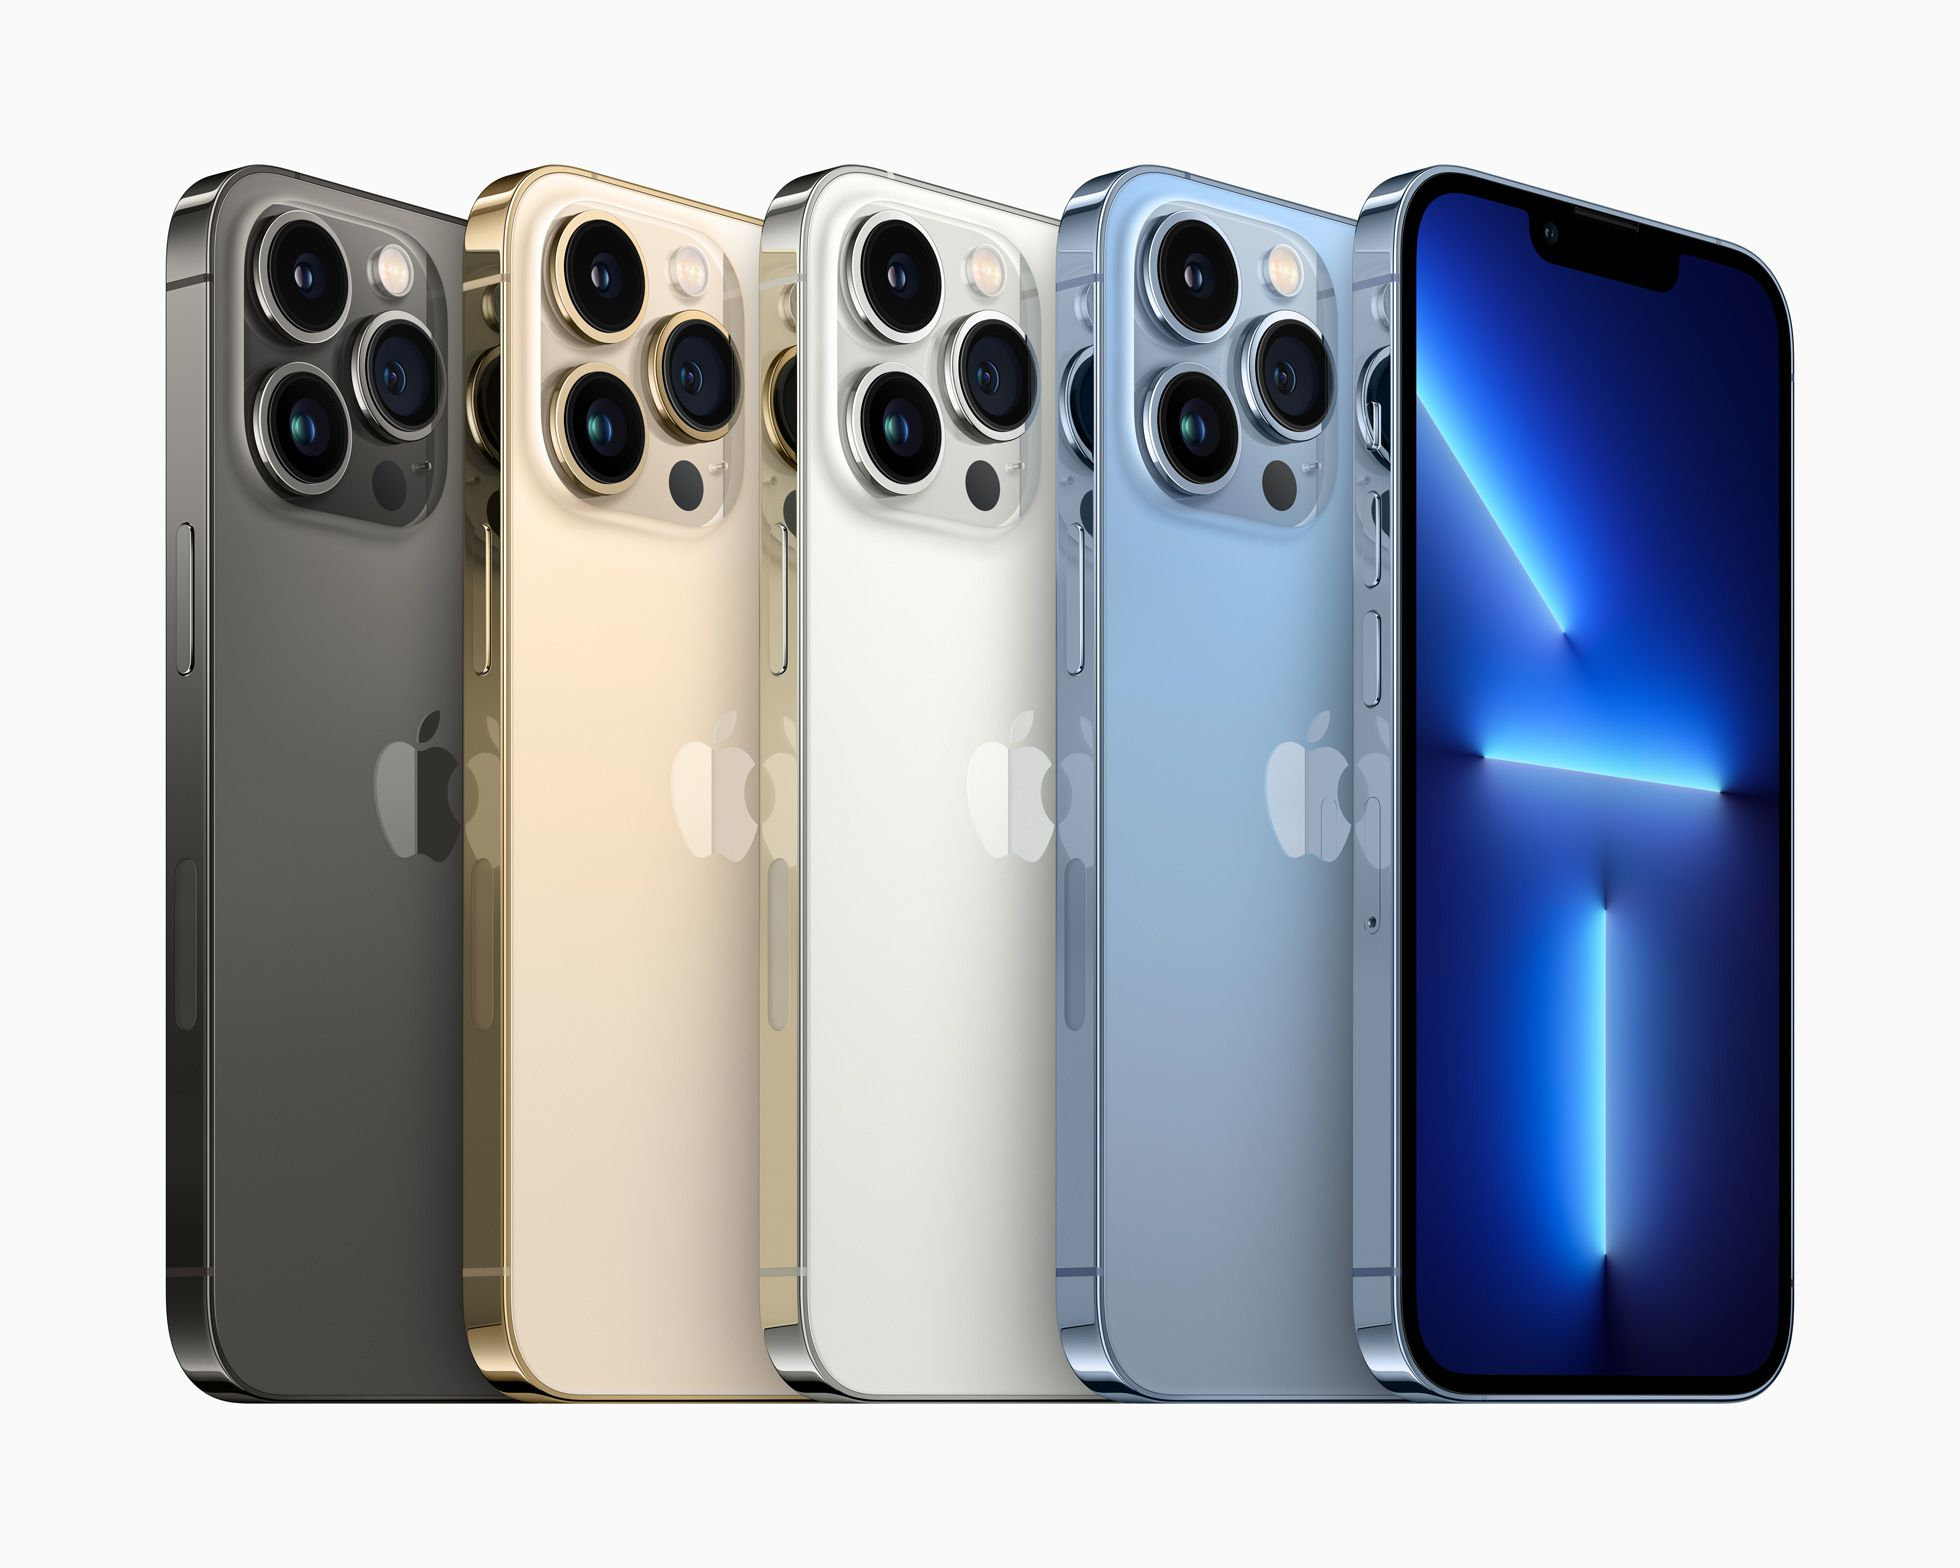 photo of Shooting 4K ProRes Video Requires iPhone 13 Pro With at Least 256GB Storage image